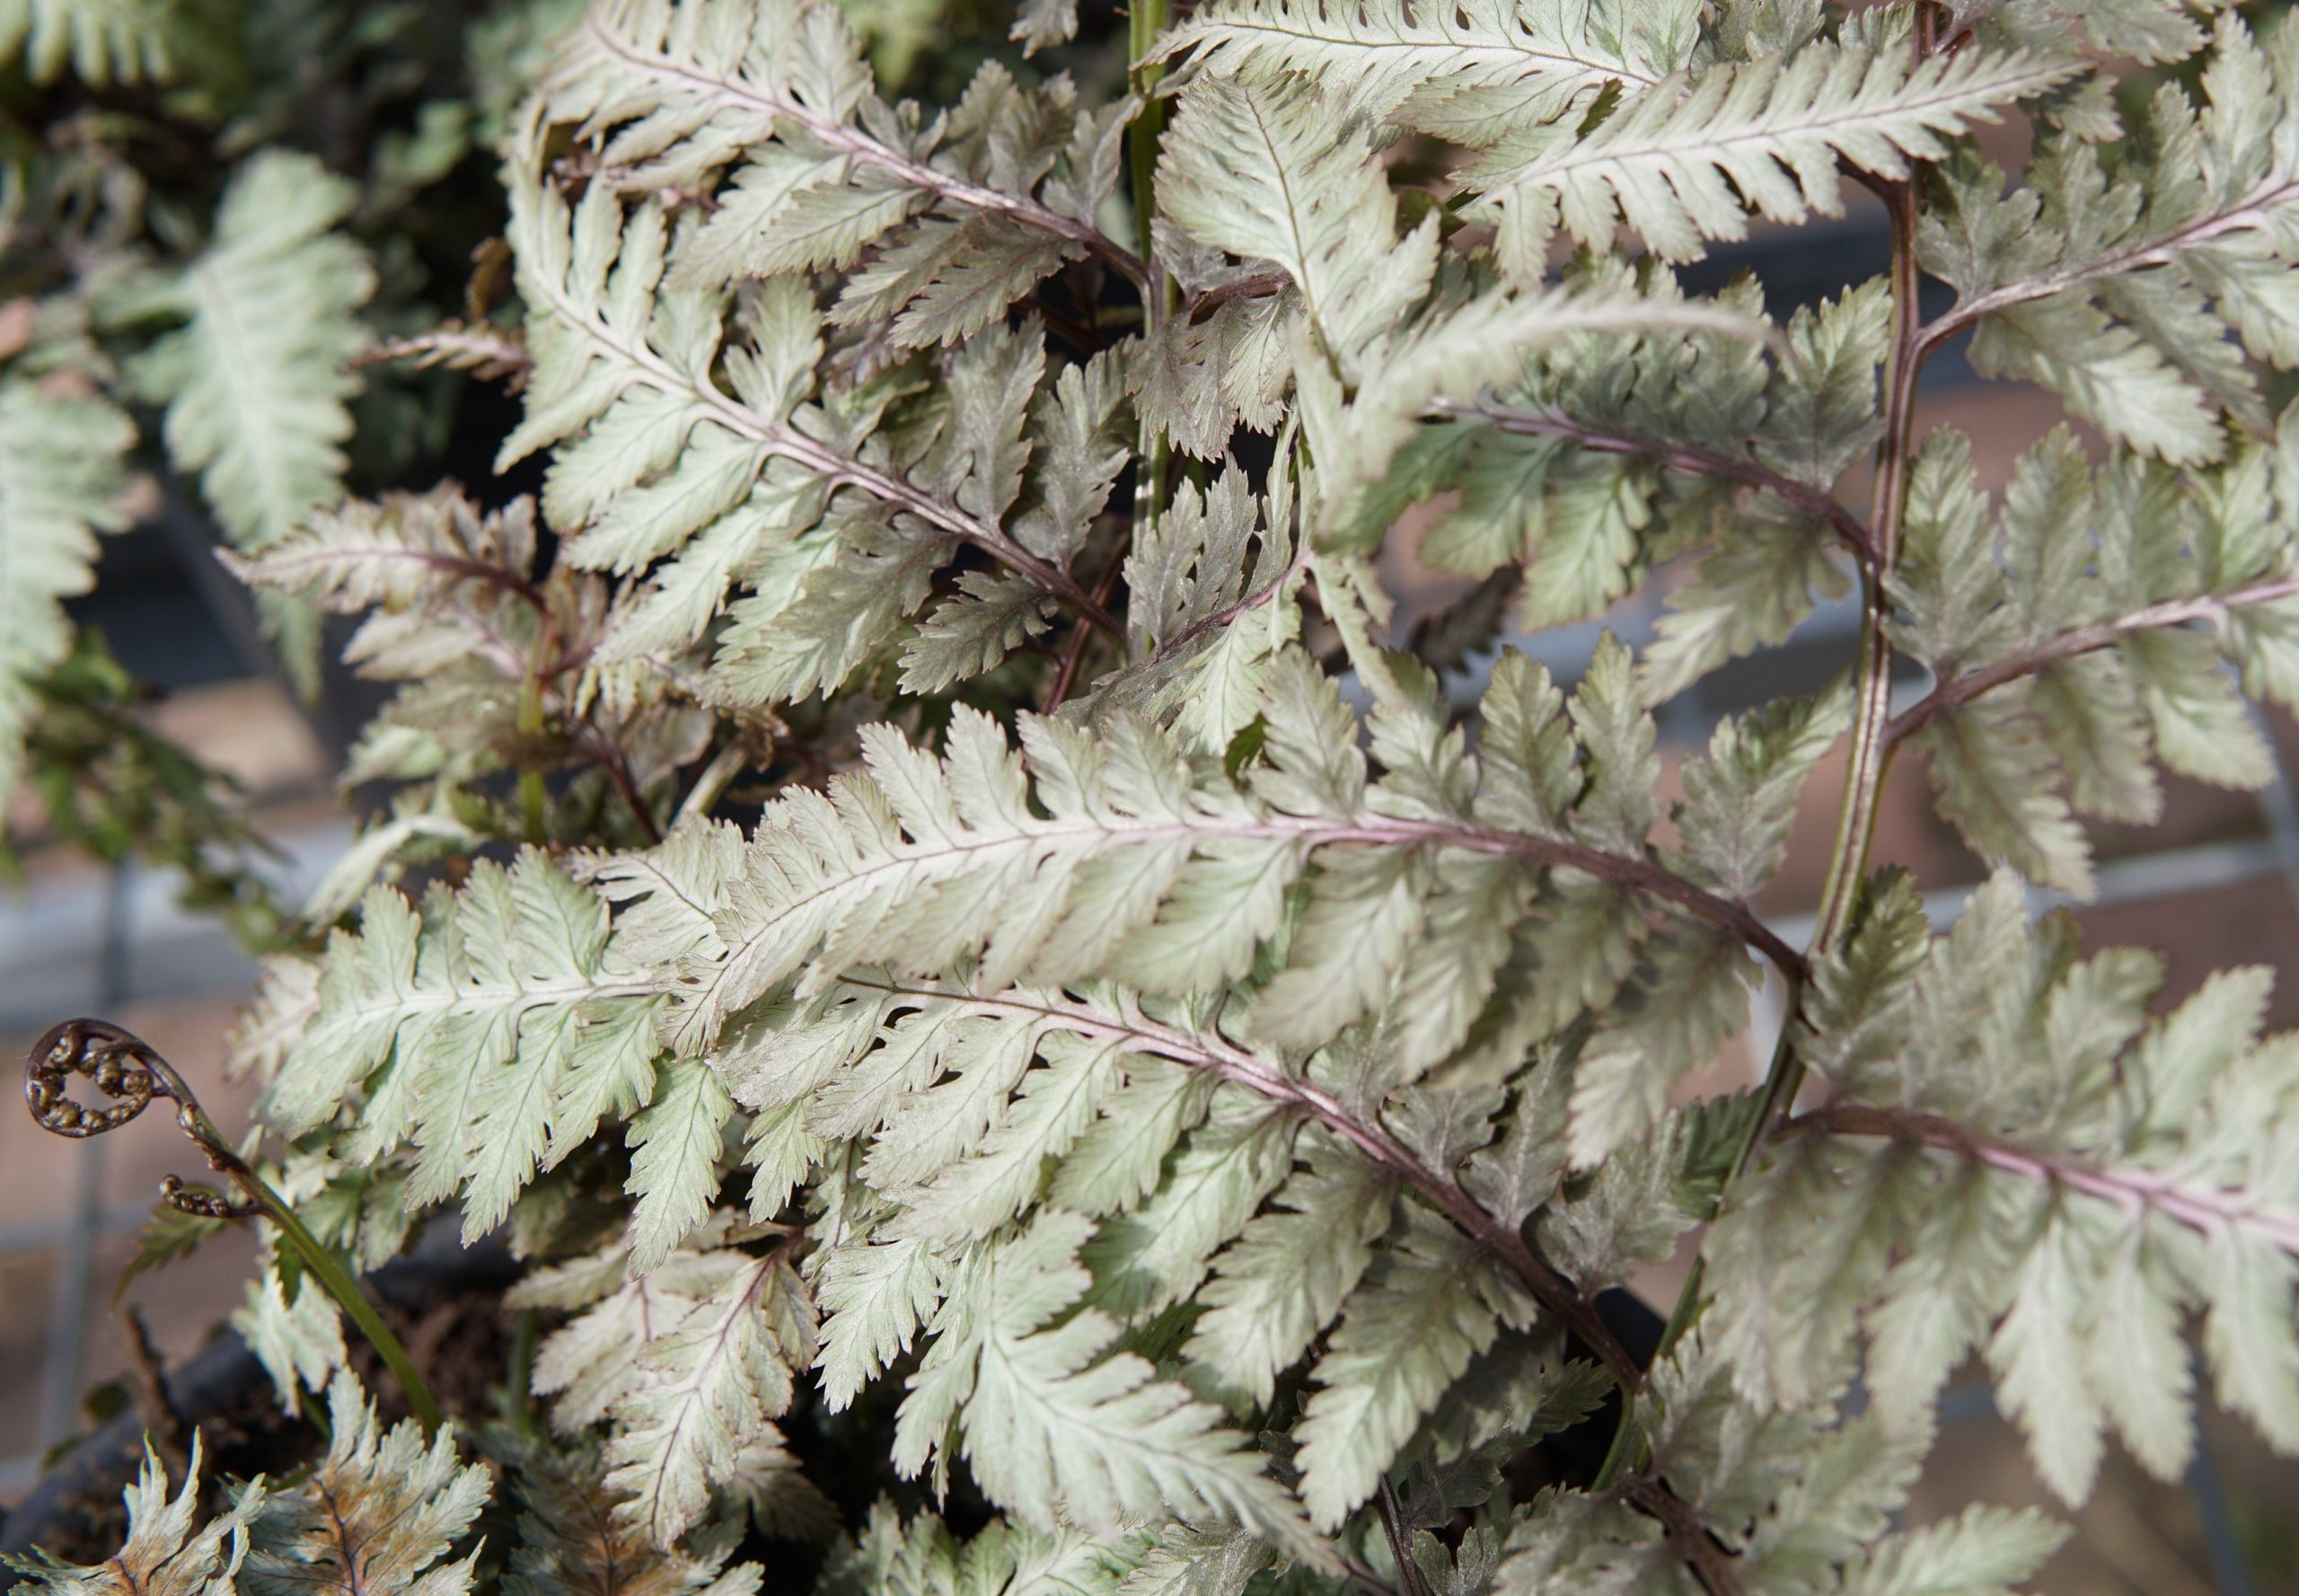 Japanese painted fern close up